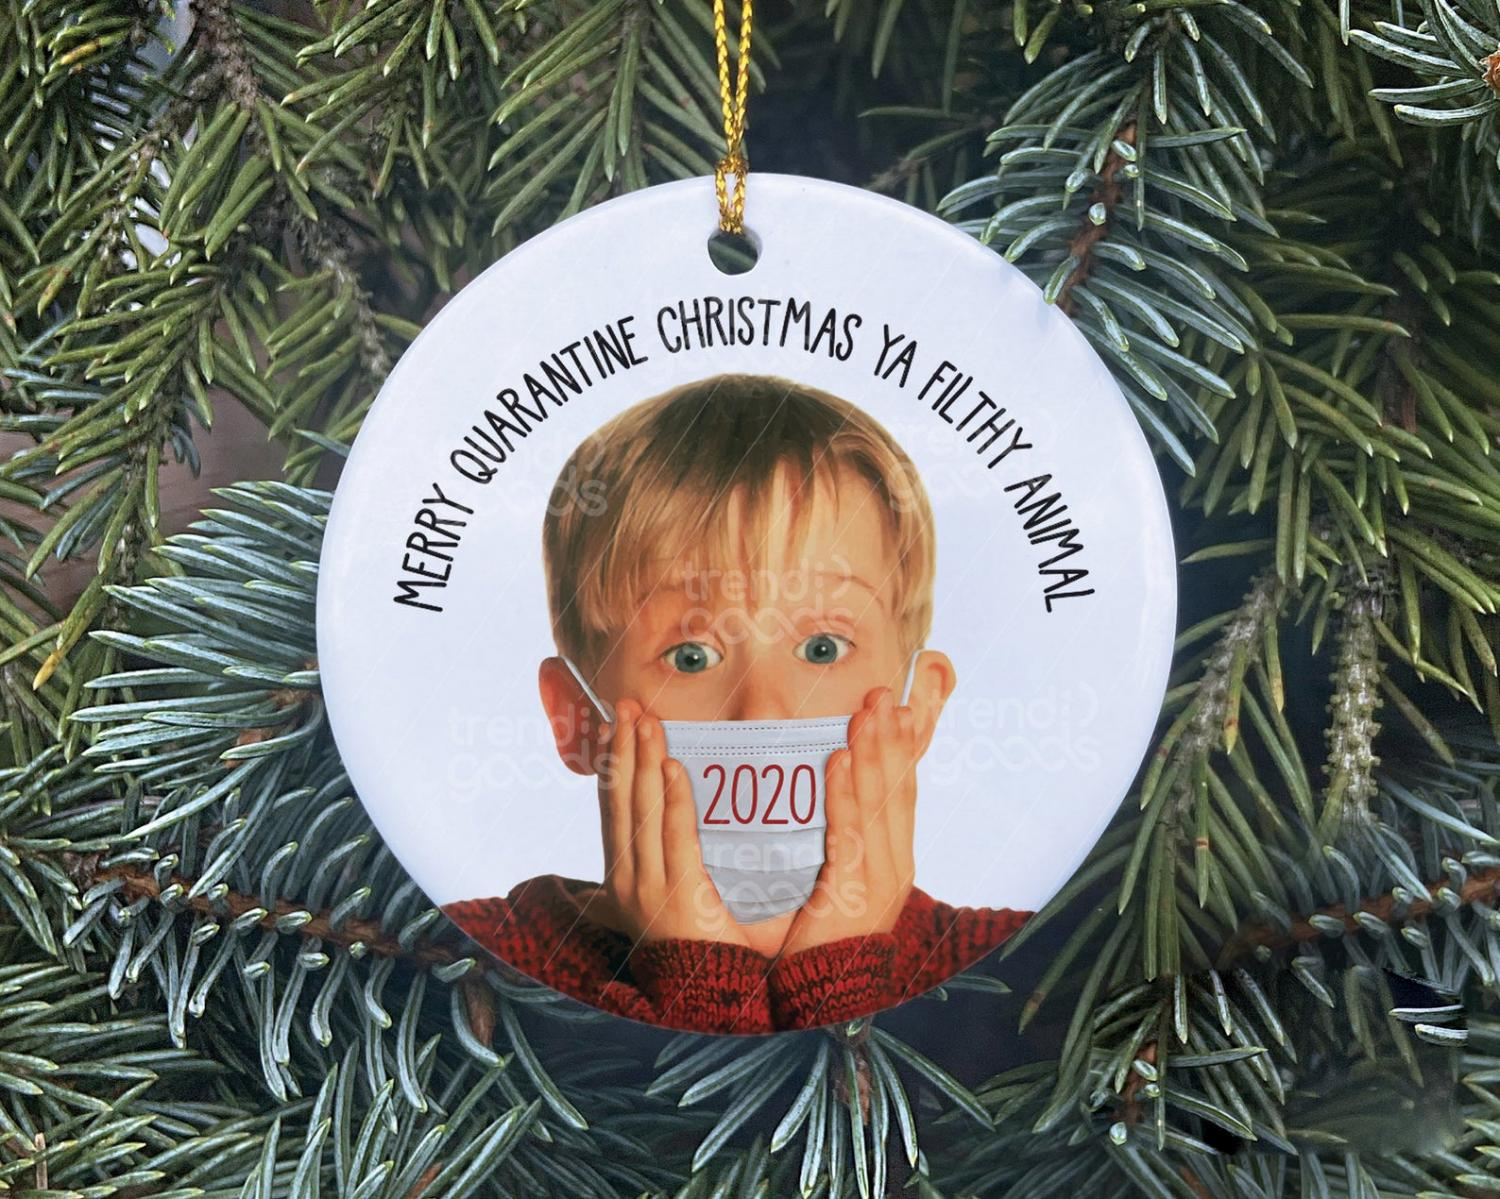 Merry Quarantine Christmas Ya Filthy Animal 2020 Home Alone Ornament